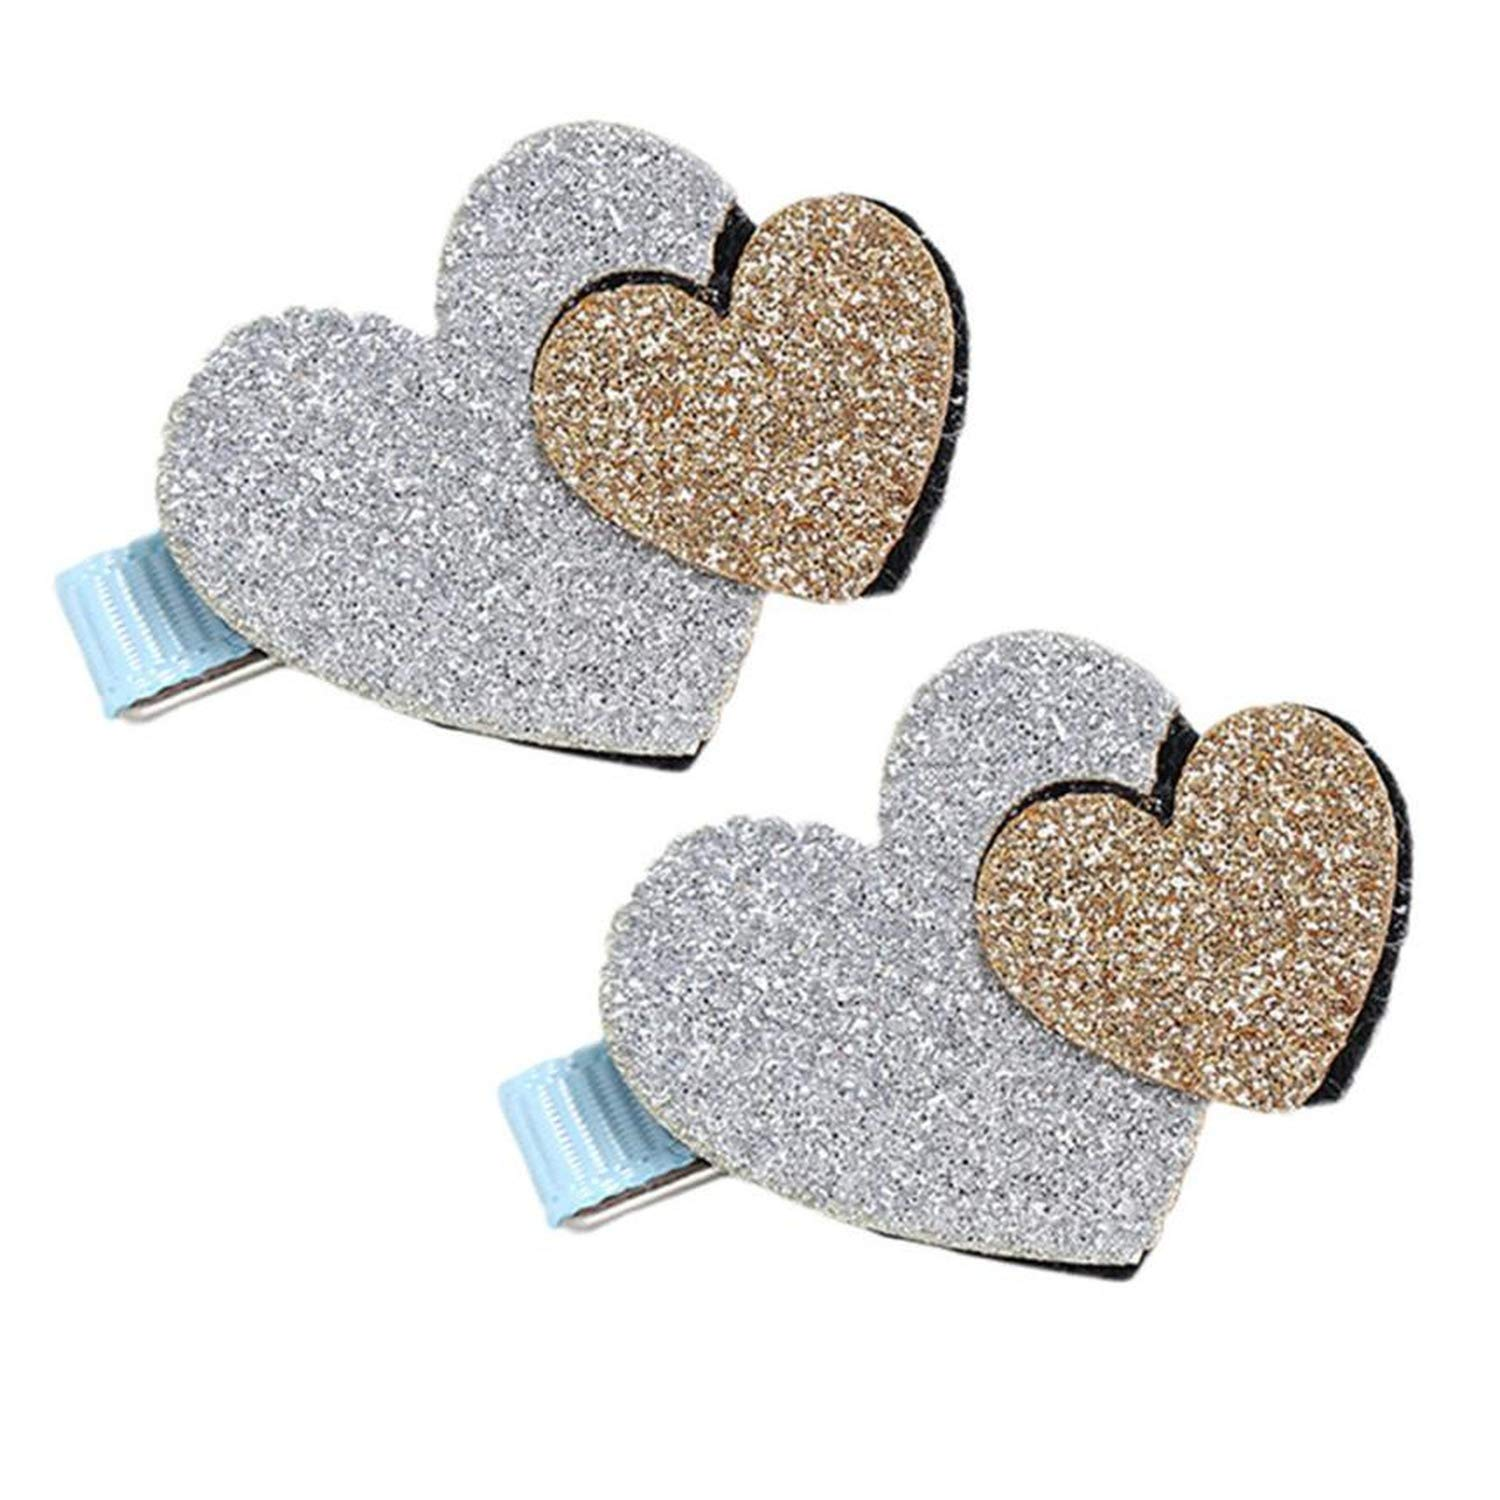 2Pcs Baby Girls Toddler Infant Kids Heart Pattern Hairpin Hair Clip Accessories Baby Headbands For Girls,Blue